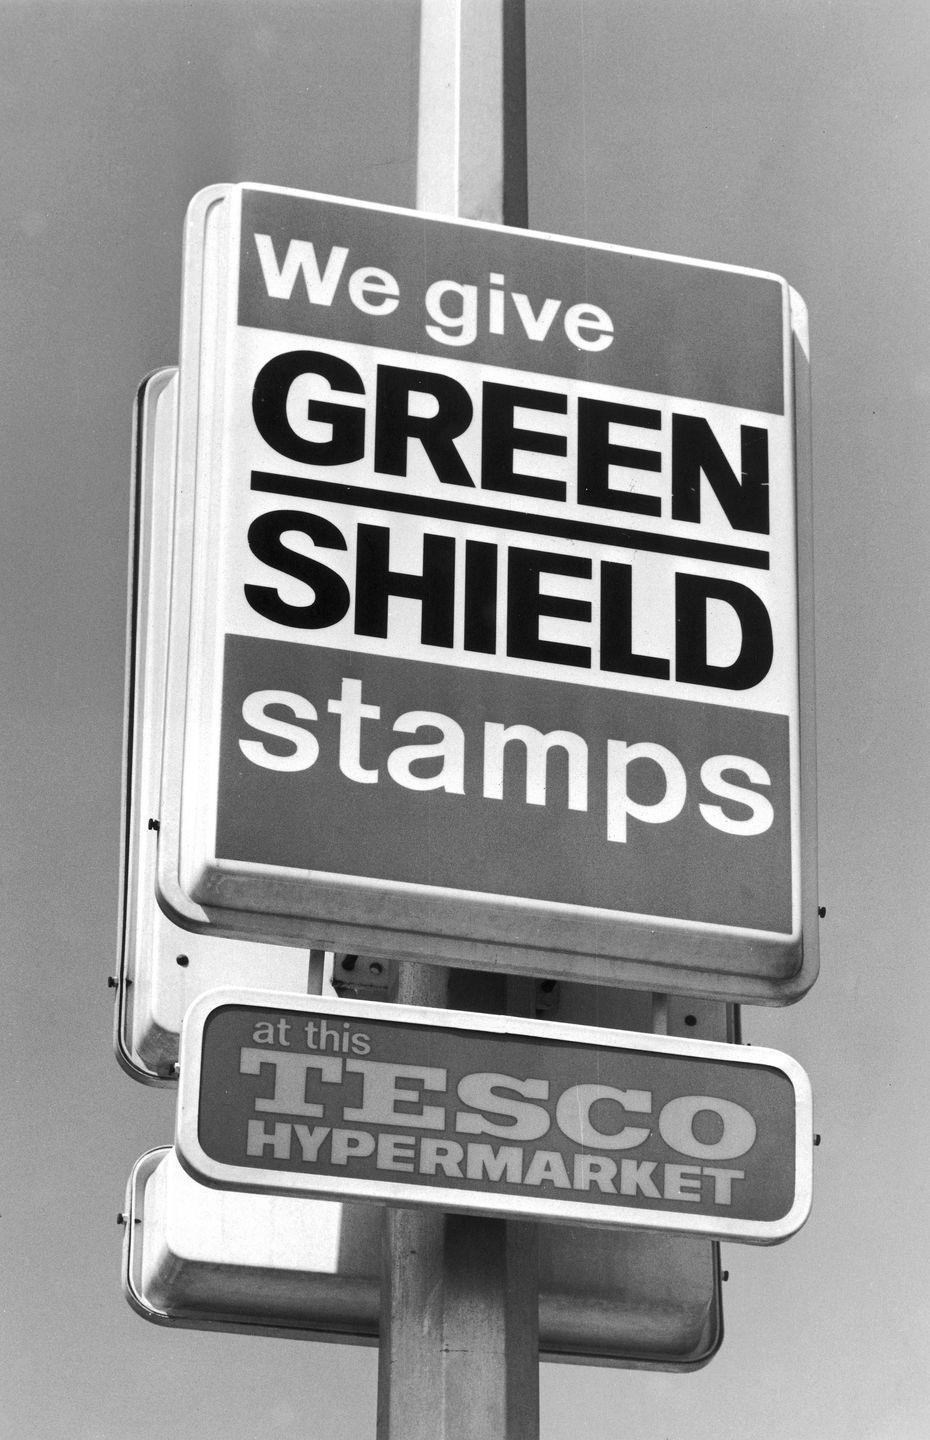 "<p>Think of green stamps like coupons on steroids. The <a href=""https://flashbak.com/livin-the-dream-with-green-stamps-a-1975-catalog-26187/"" rel=""nofollow noopener"" target=""_blank"" data-ylk=""slk:loyalty program, established by Sperry and Hutchinson"" class=""link rapid-noclick-resp"">loyalty program, established by Sperry and Hutchinson</a>, allowed shoppers to collect stamps at their local grocery and trade them in for items in the S&H catalog. Green stamps were huge in the '70s — <em>The Brady Bunch</em> even did an episode about them — but the trend faded by the '80s.</p>"